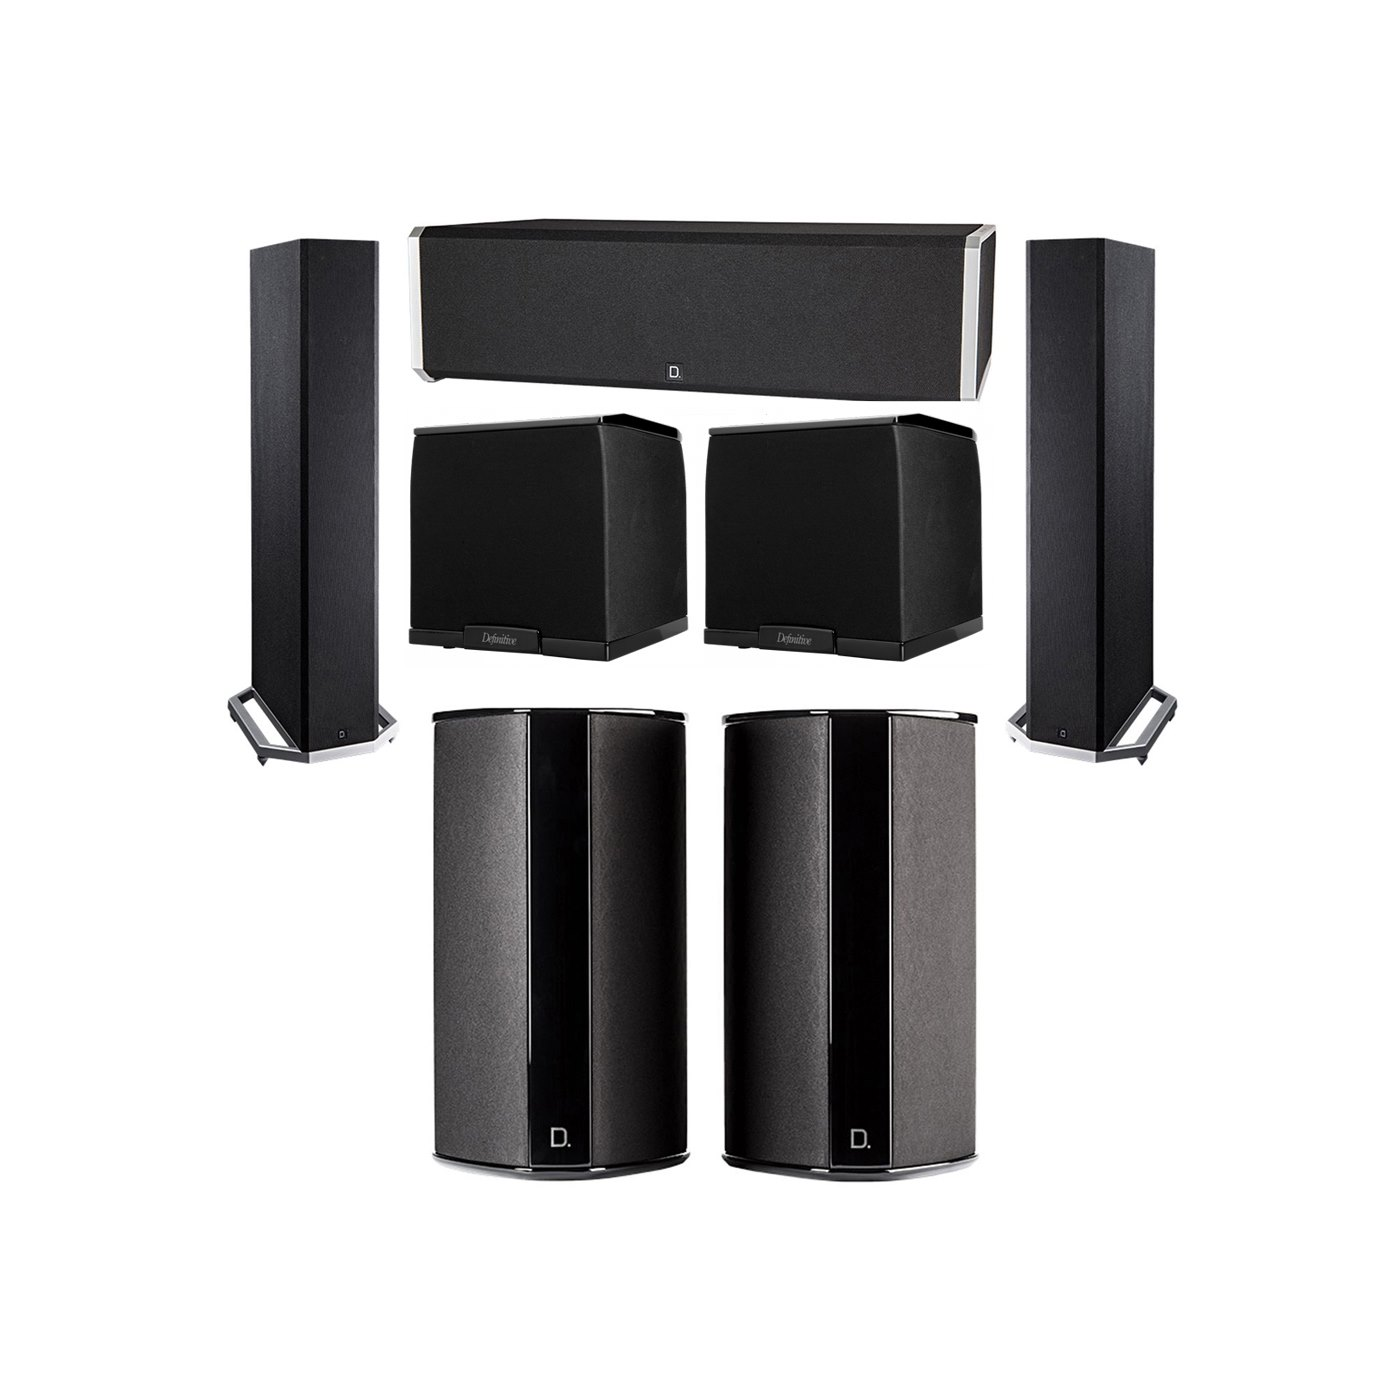 Definitive Technology 5.2 System with 2 BP9020 Tower Speakers, 1 CS9040 Center Channel Speaker, 2 SR9080 Surround Speaker, 2 Definitive Technology SuperCube 2000 Powered Subwoofer